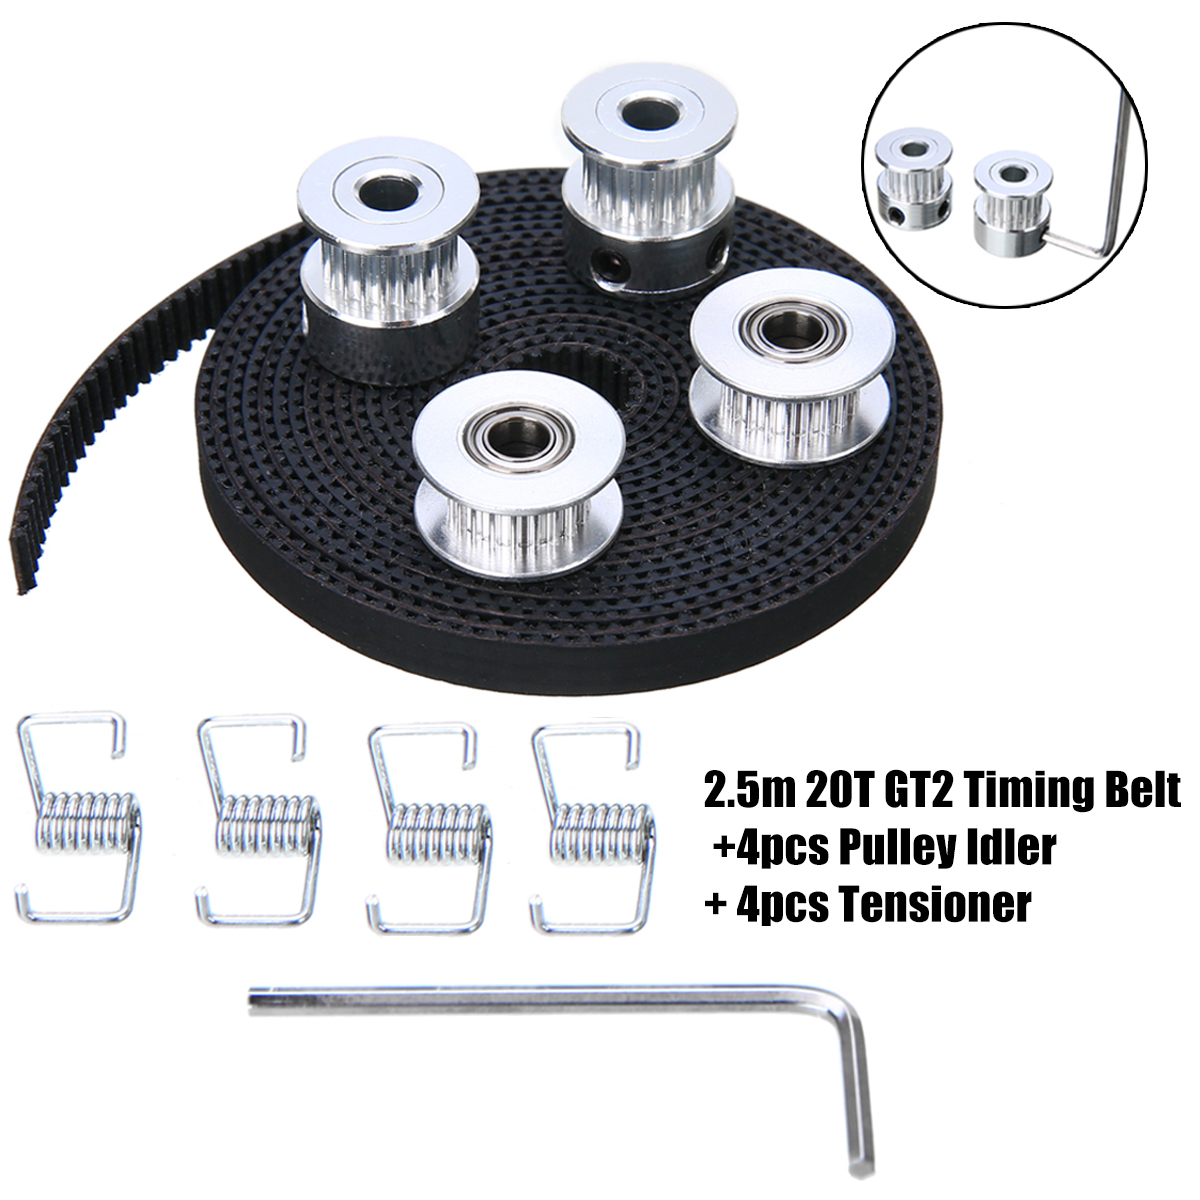 New 2.5m 20T GT2 Timing Belt +4pcs Pulley Idler + 4pcs Tensioner 3D Printer Tool Set цены